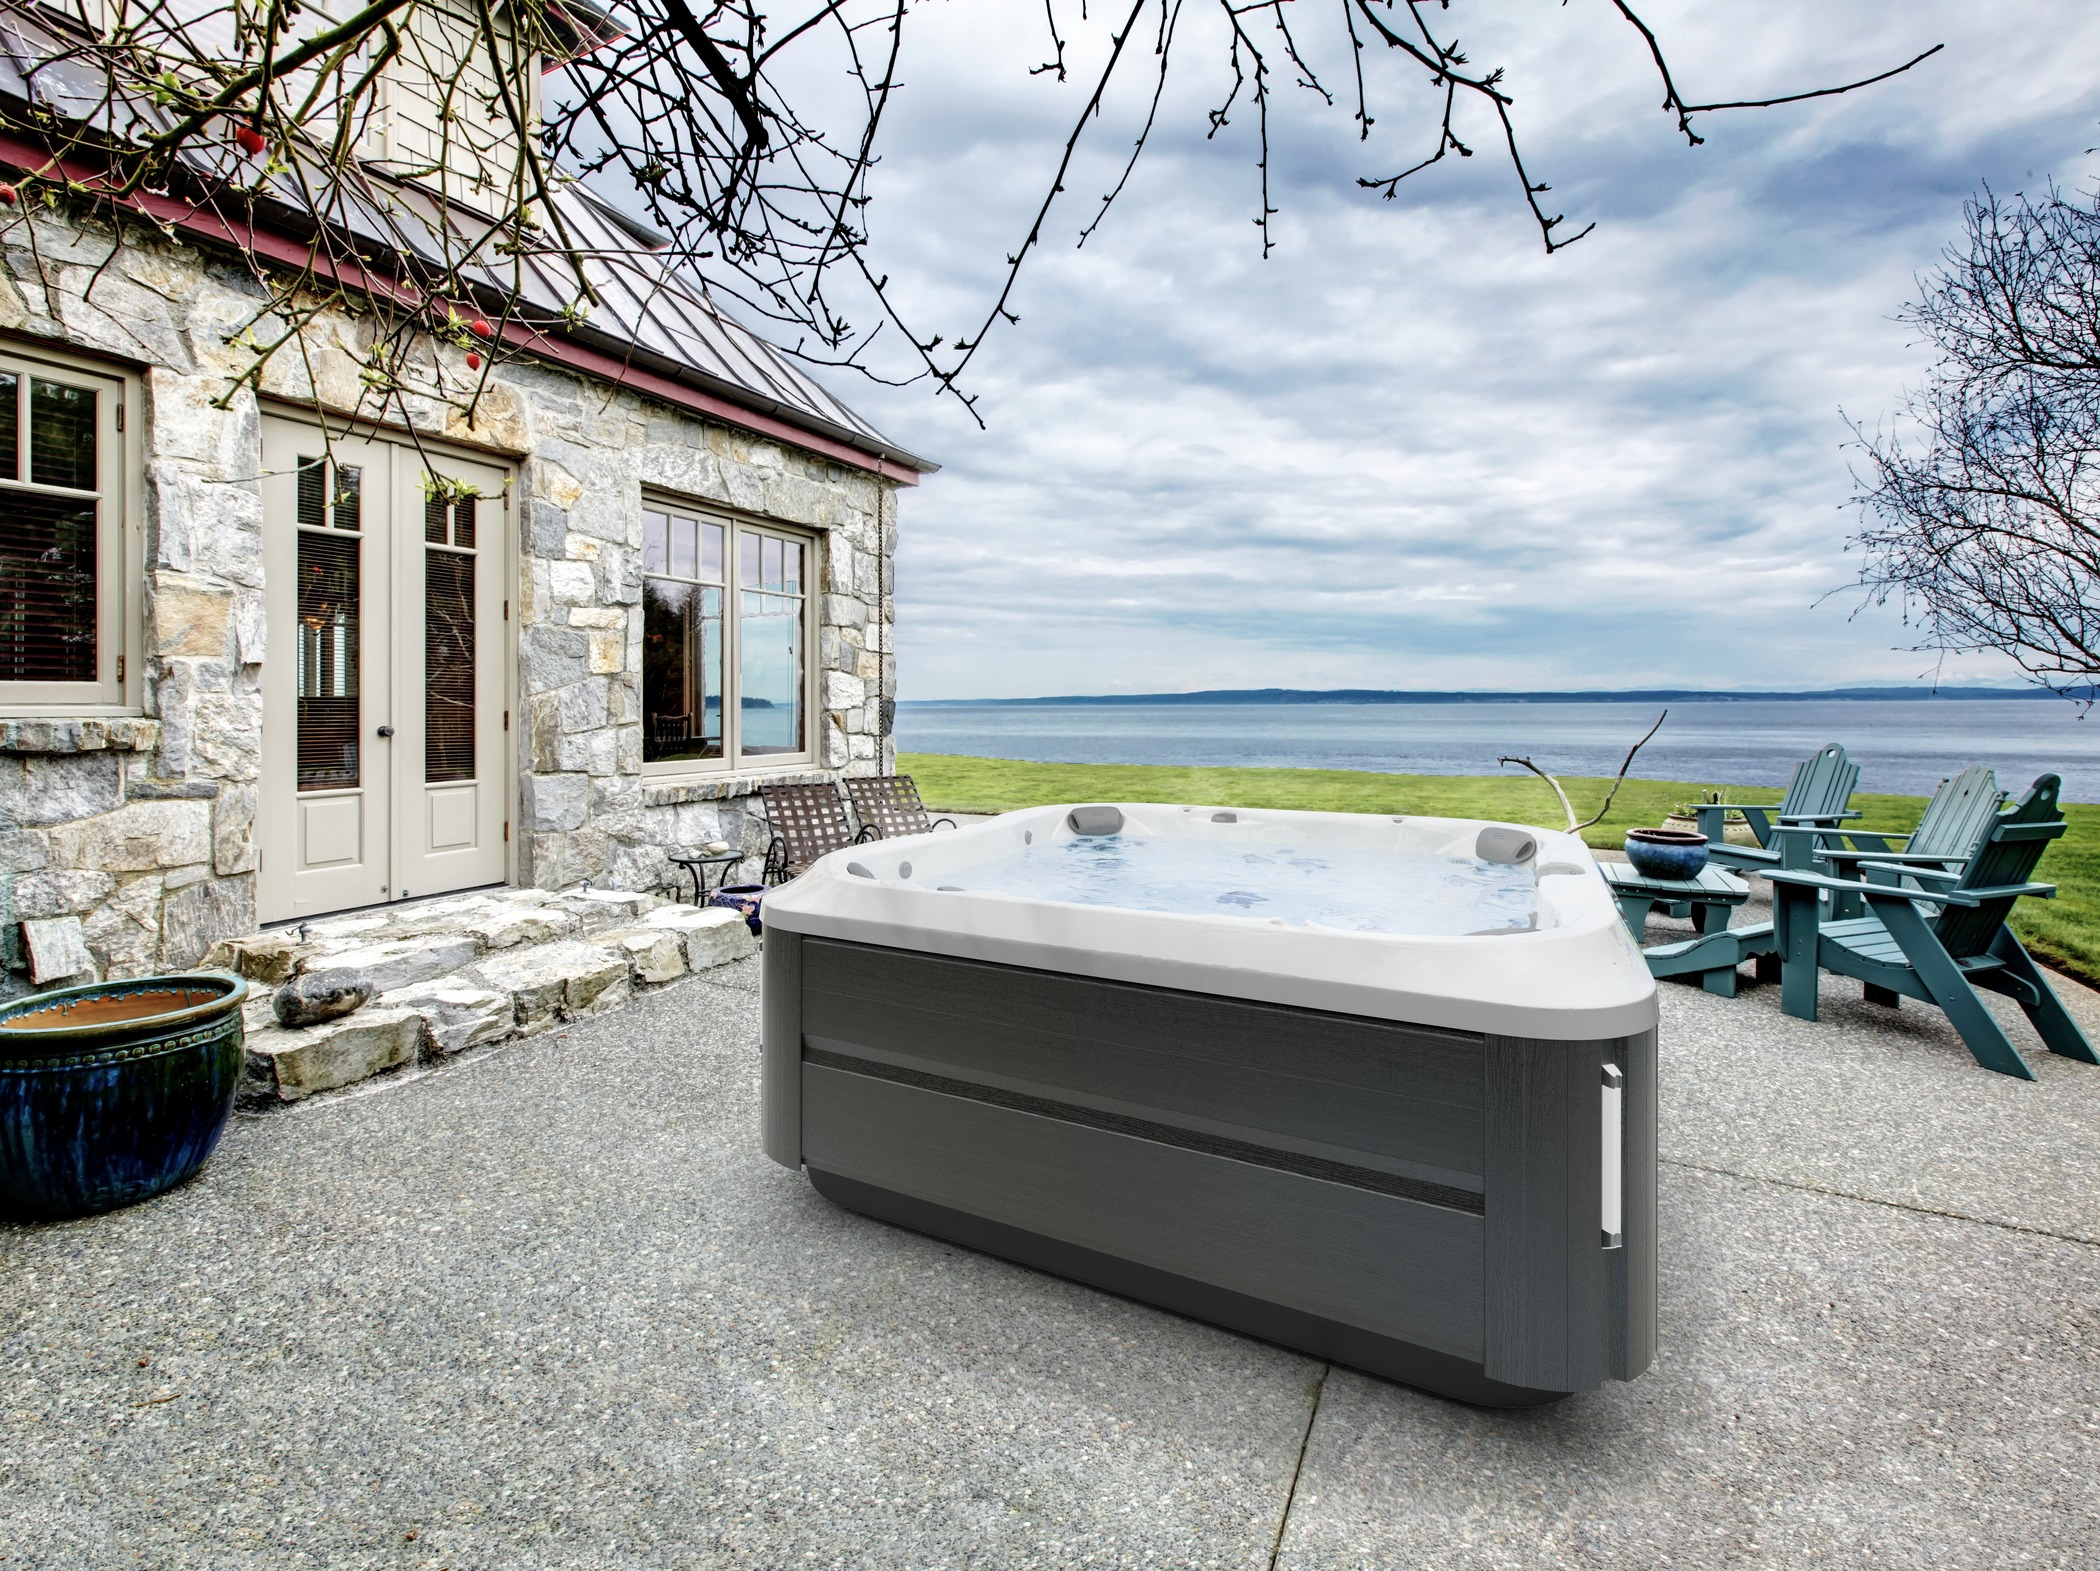 Outdoor hot tub on a deck